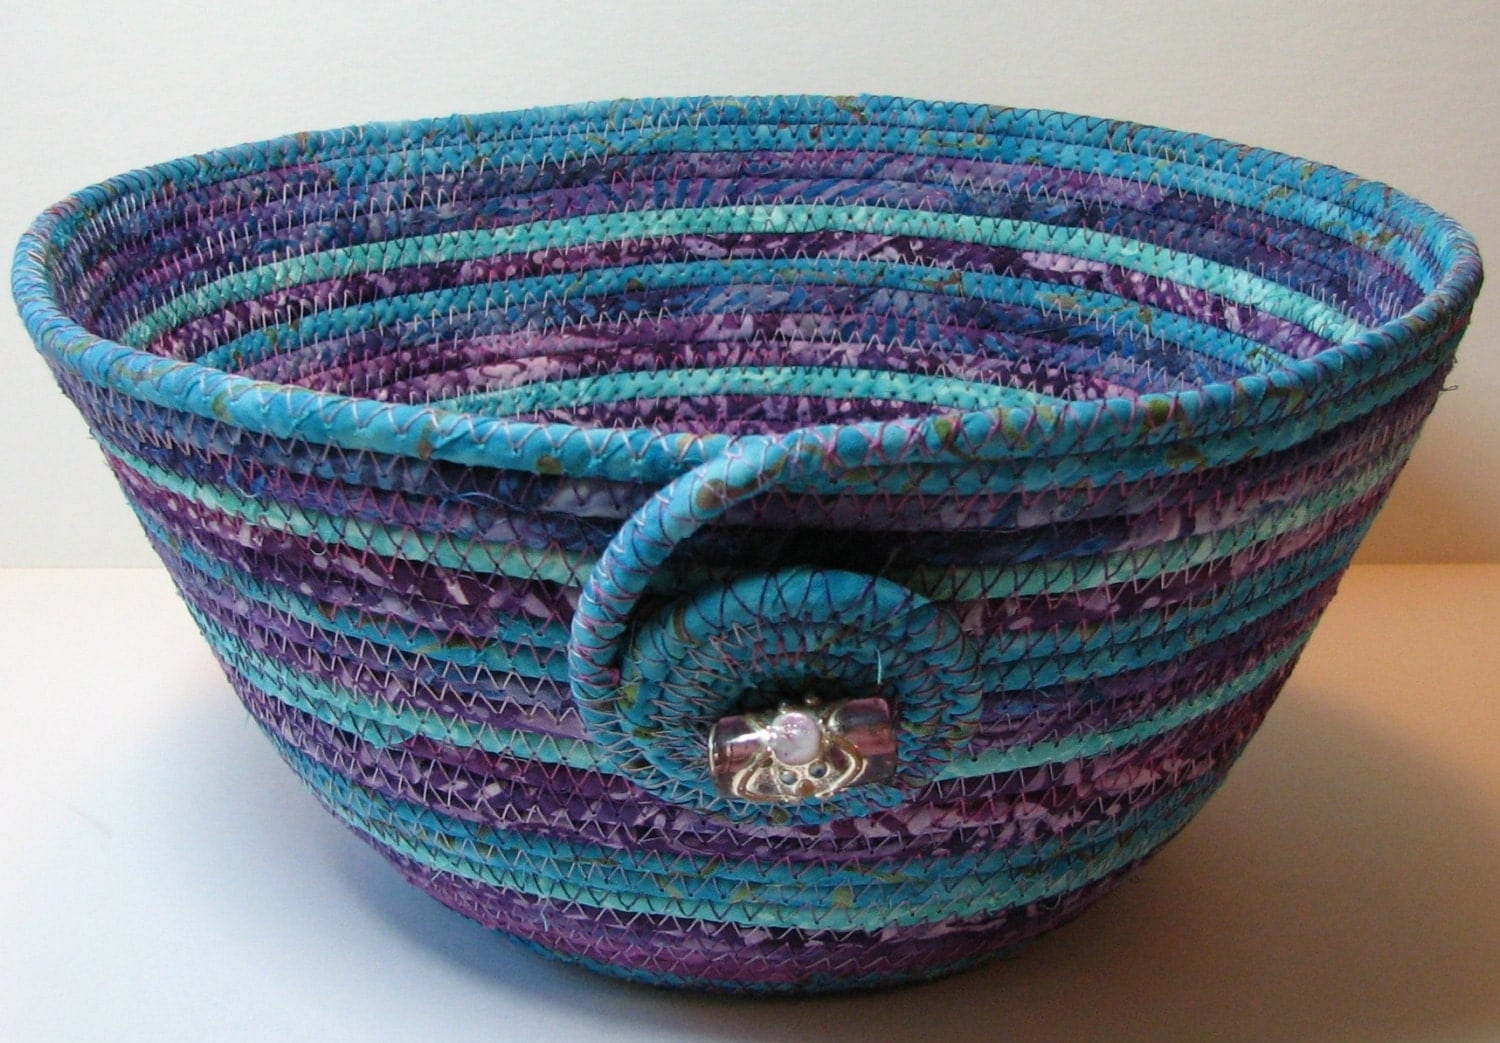 Handmade Coiled Fabric Basket/Bowl purple/turquoise